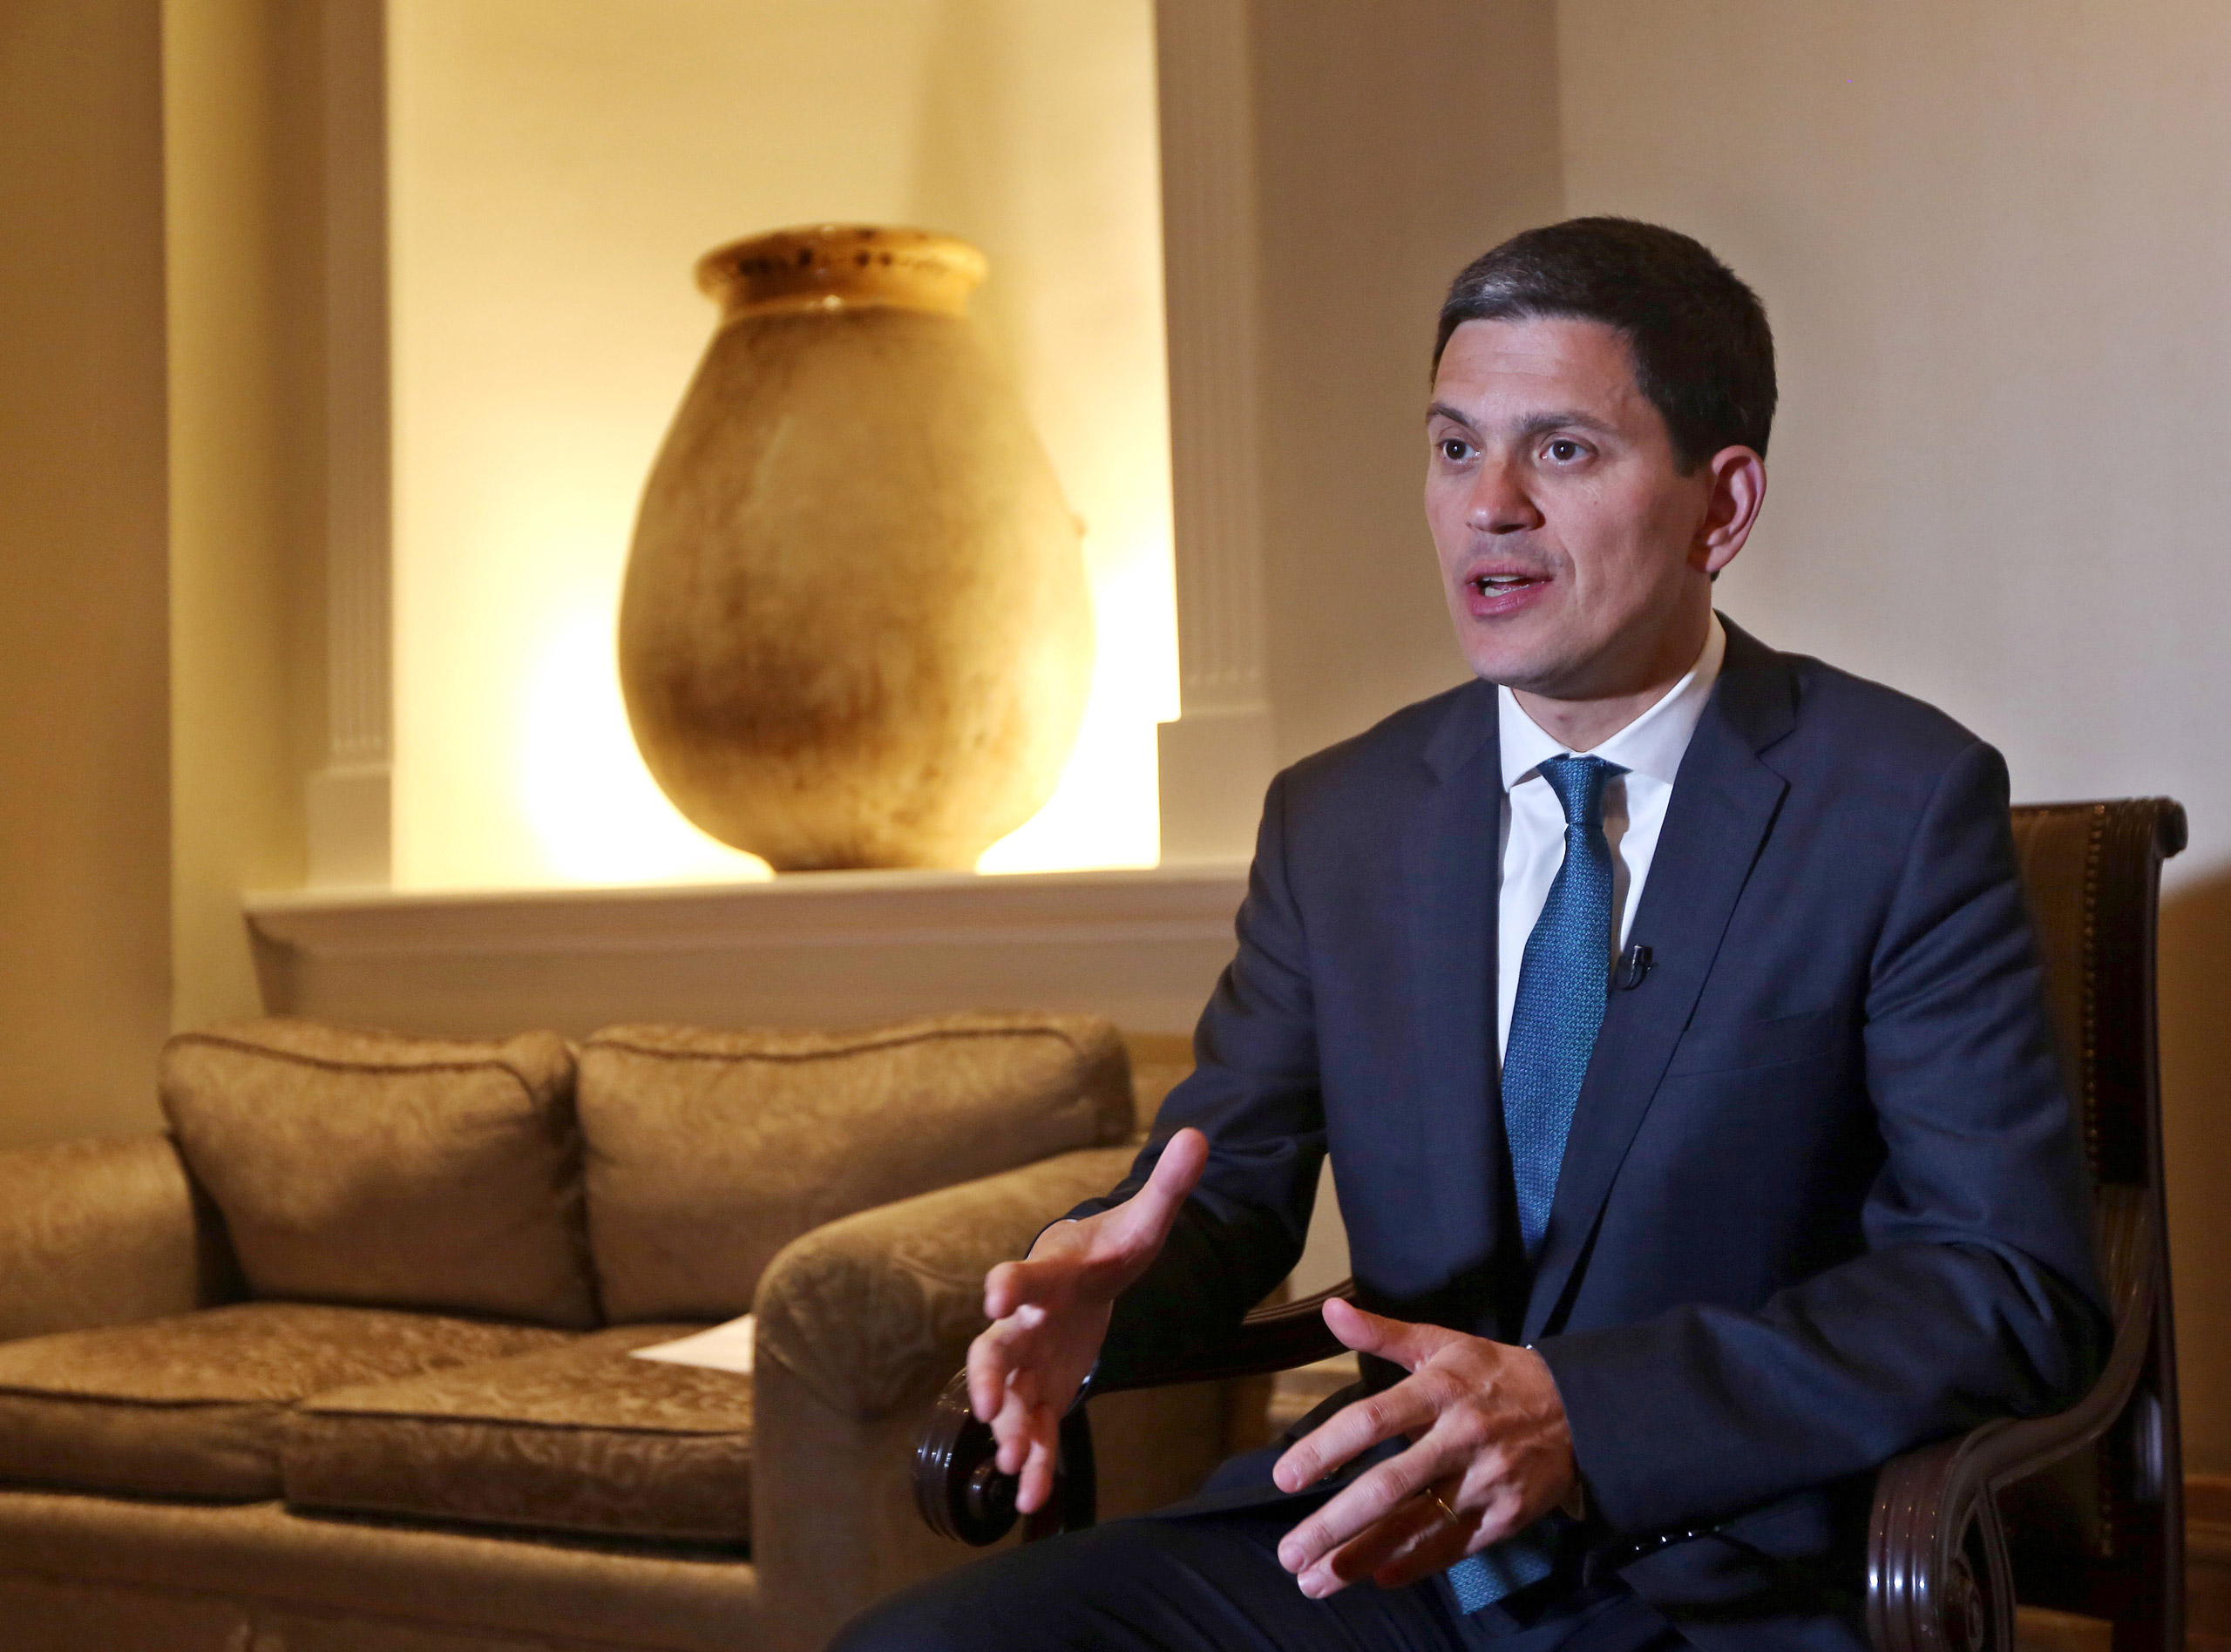 David Miliband, the President and CEO of the International Rescue Committee, speaks during an interview with The Associated Press in Beirut, on Apr. 9, 2015.